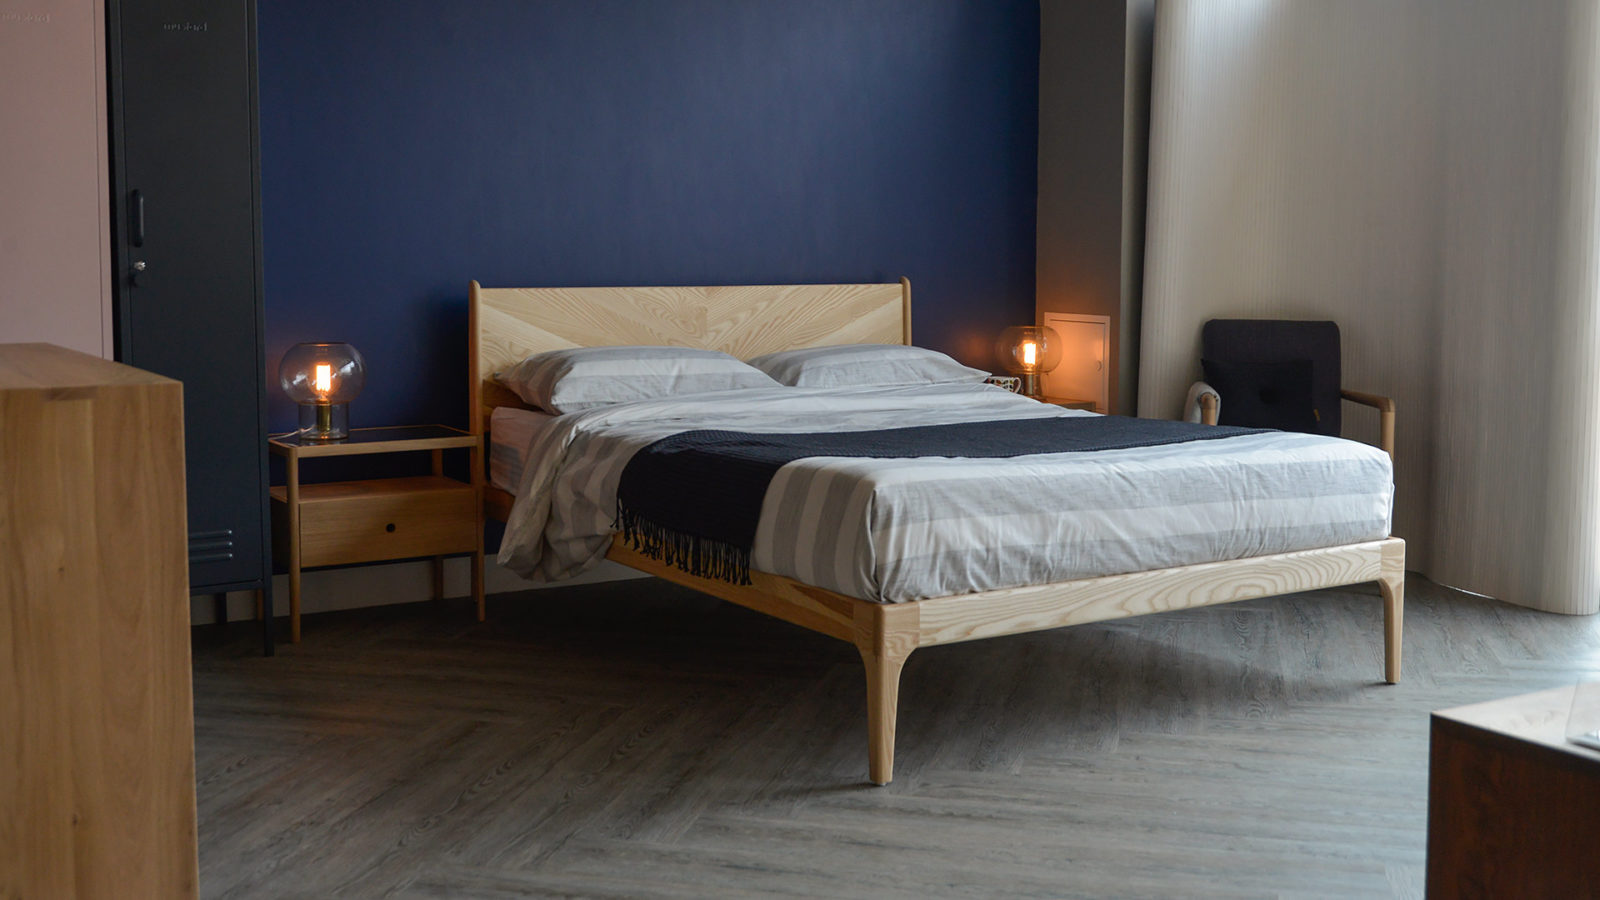 Mid-century style updated - the Hoxton bed with Herringbone headboard made in solid Ash.